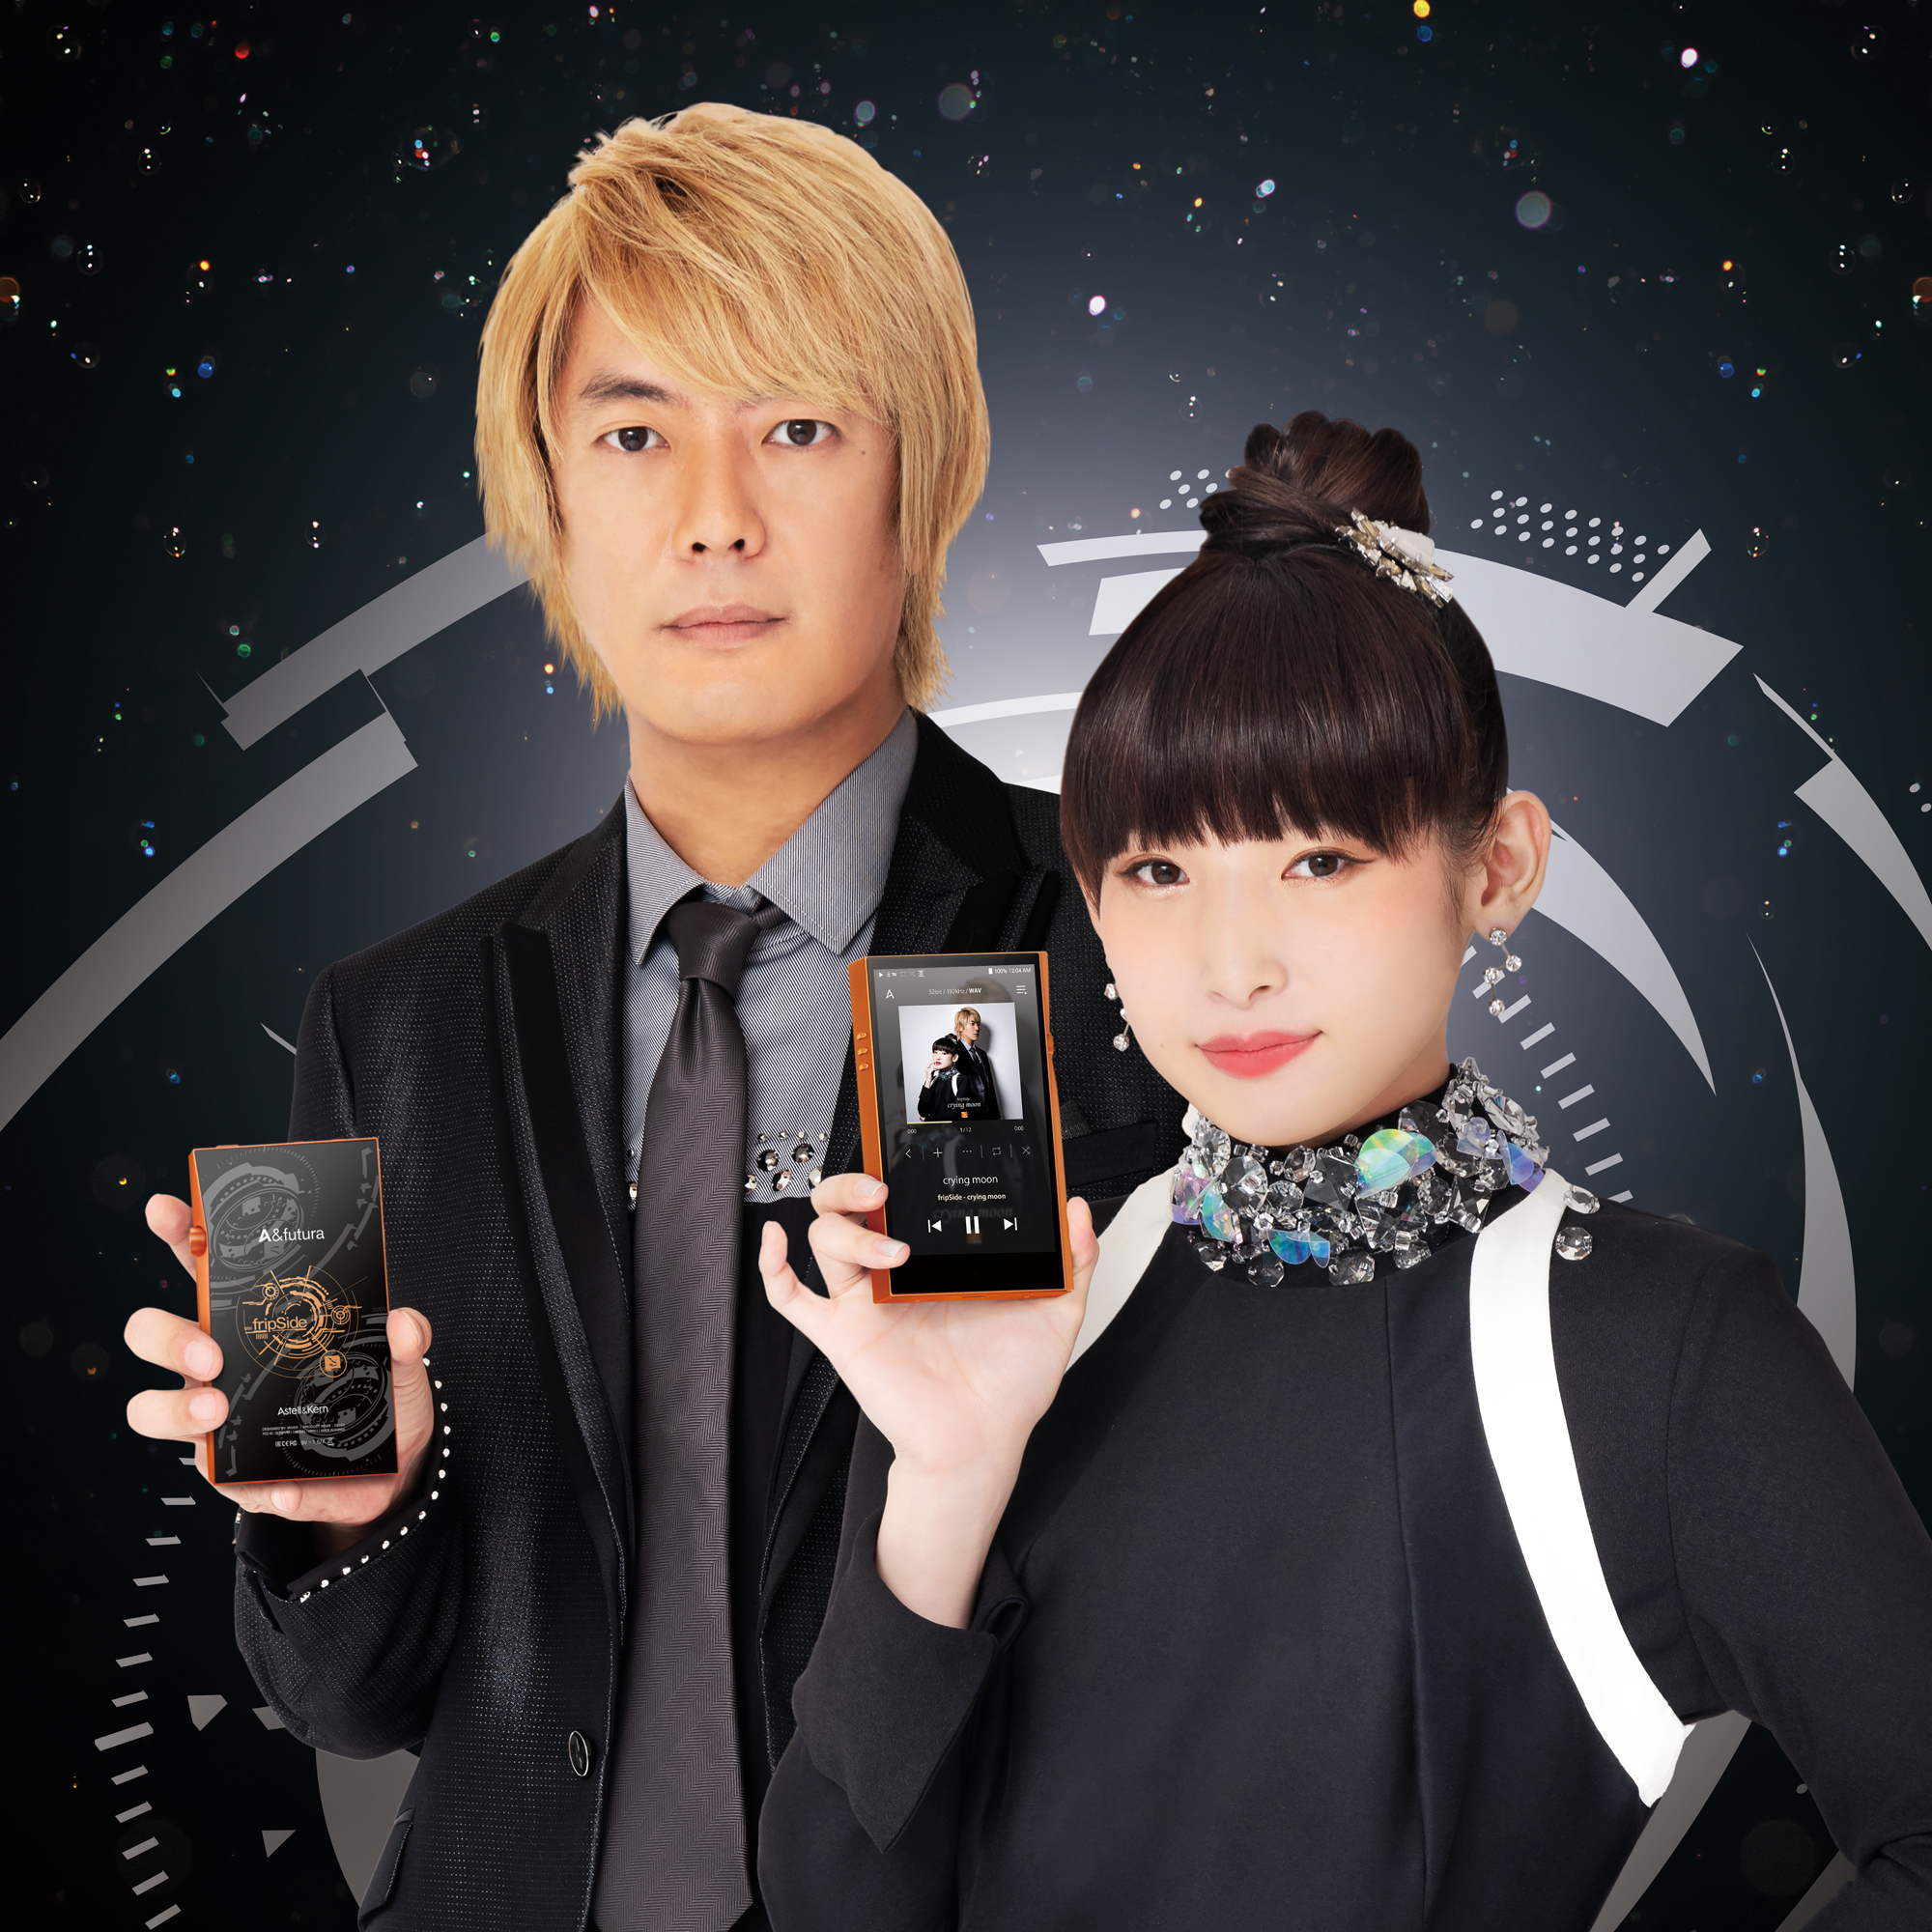 「fripSide」とのコラボハイレゾプレーヤー『A&futuraSE100 fripSide Edition』